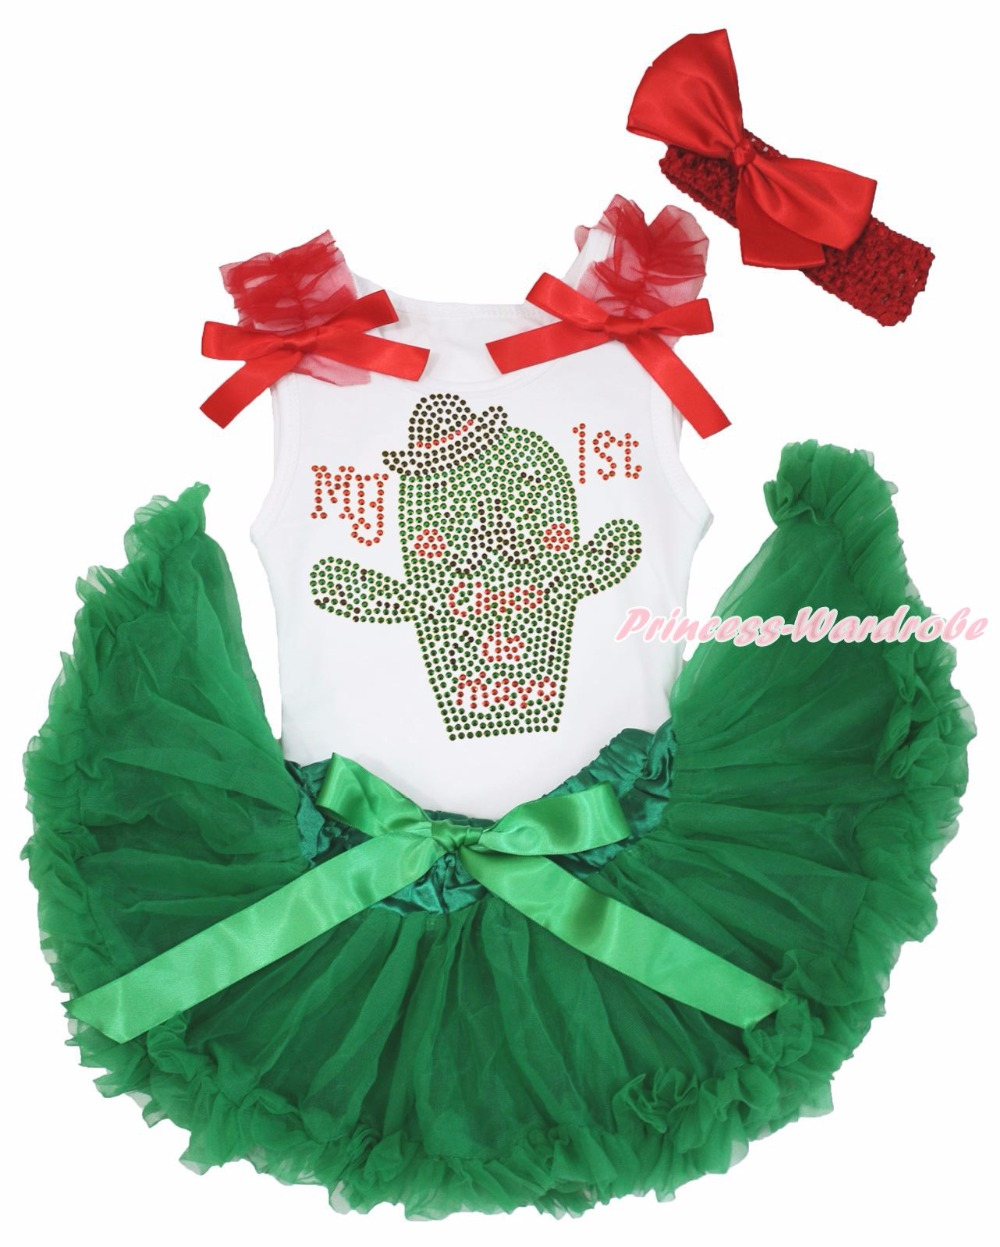 Cinco de Mayo MY 1ST Cactus White Top Green Girls Mexico Baby Skirt Outfit 3-12M цена